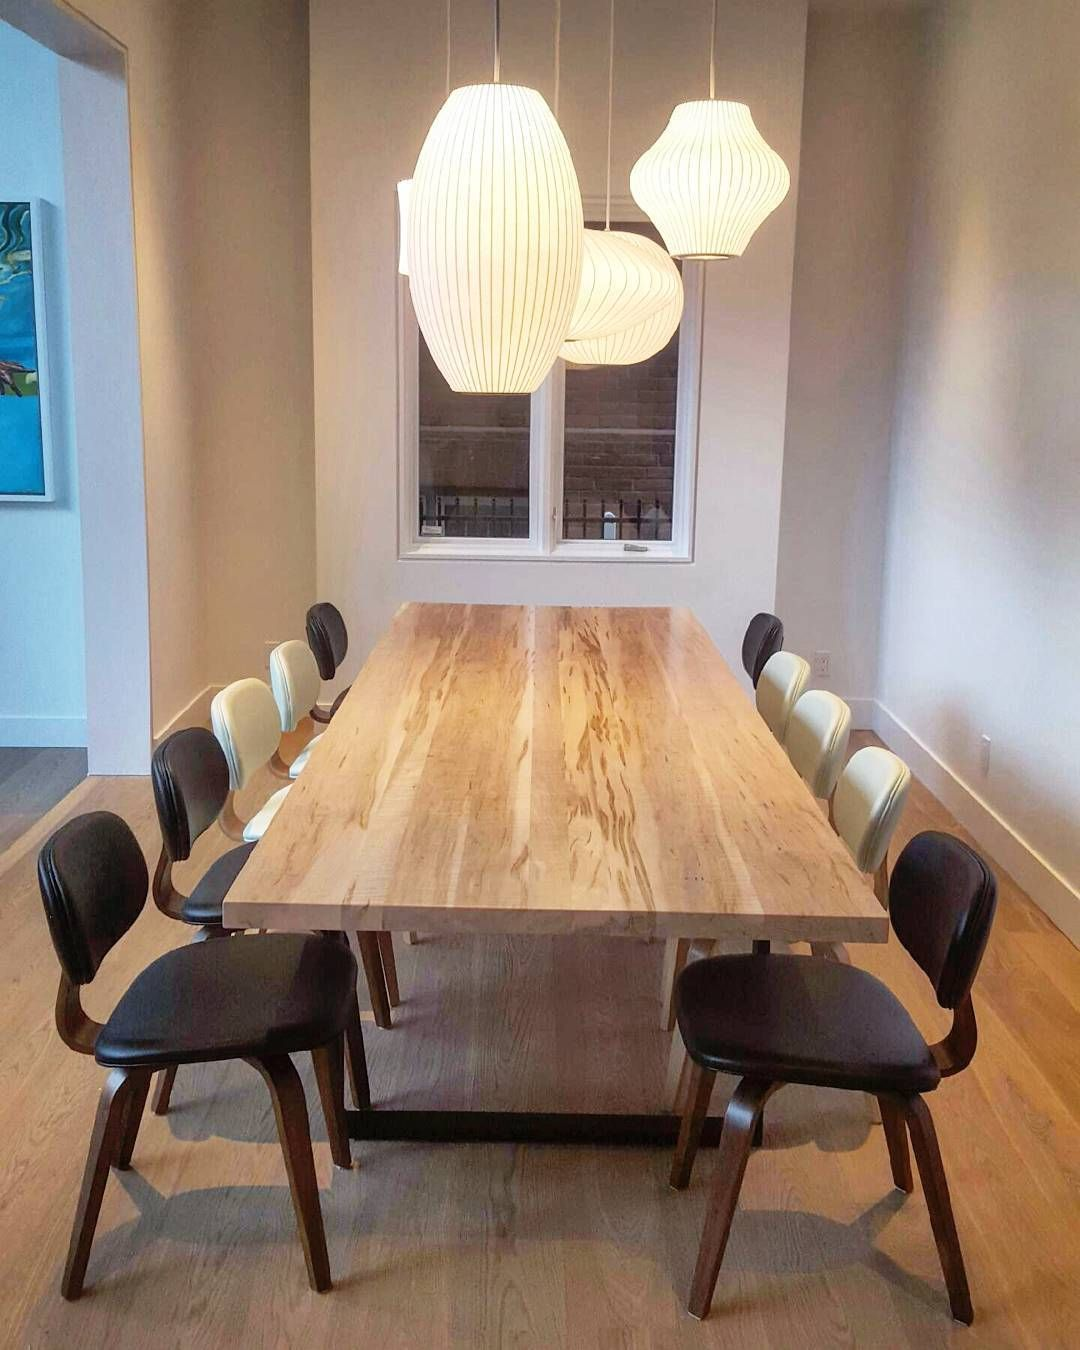 10 Ft Long Curly Ambrosia Maple Table On Industrial Steel Legs Adorable Maple Dining Room Table Design Ideas